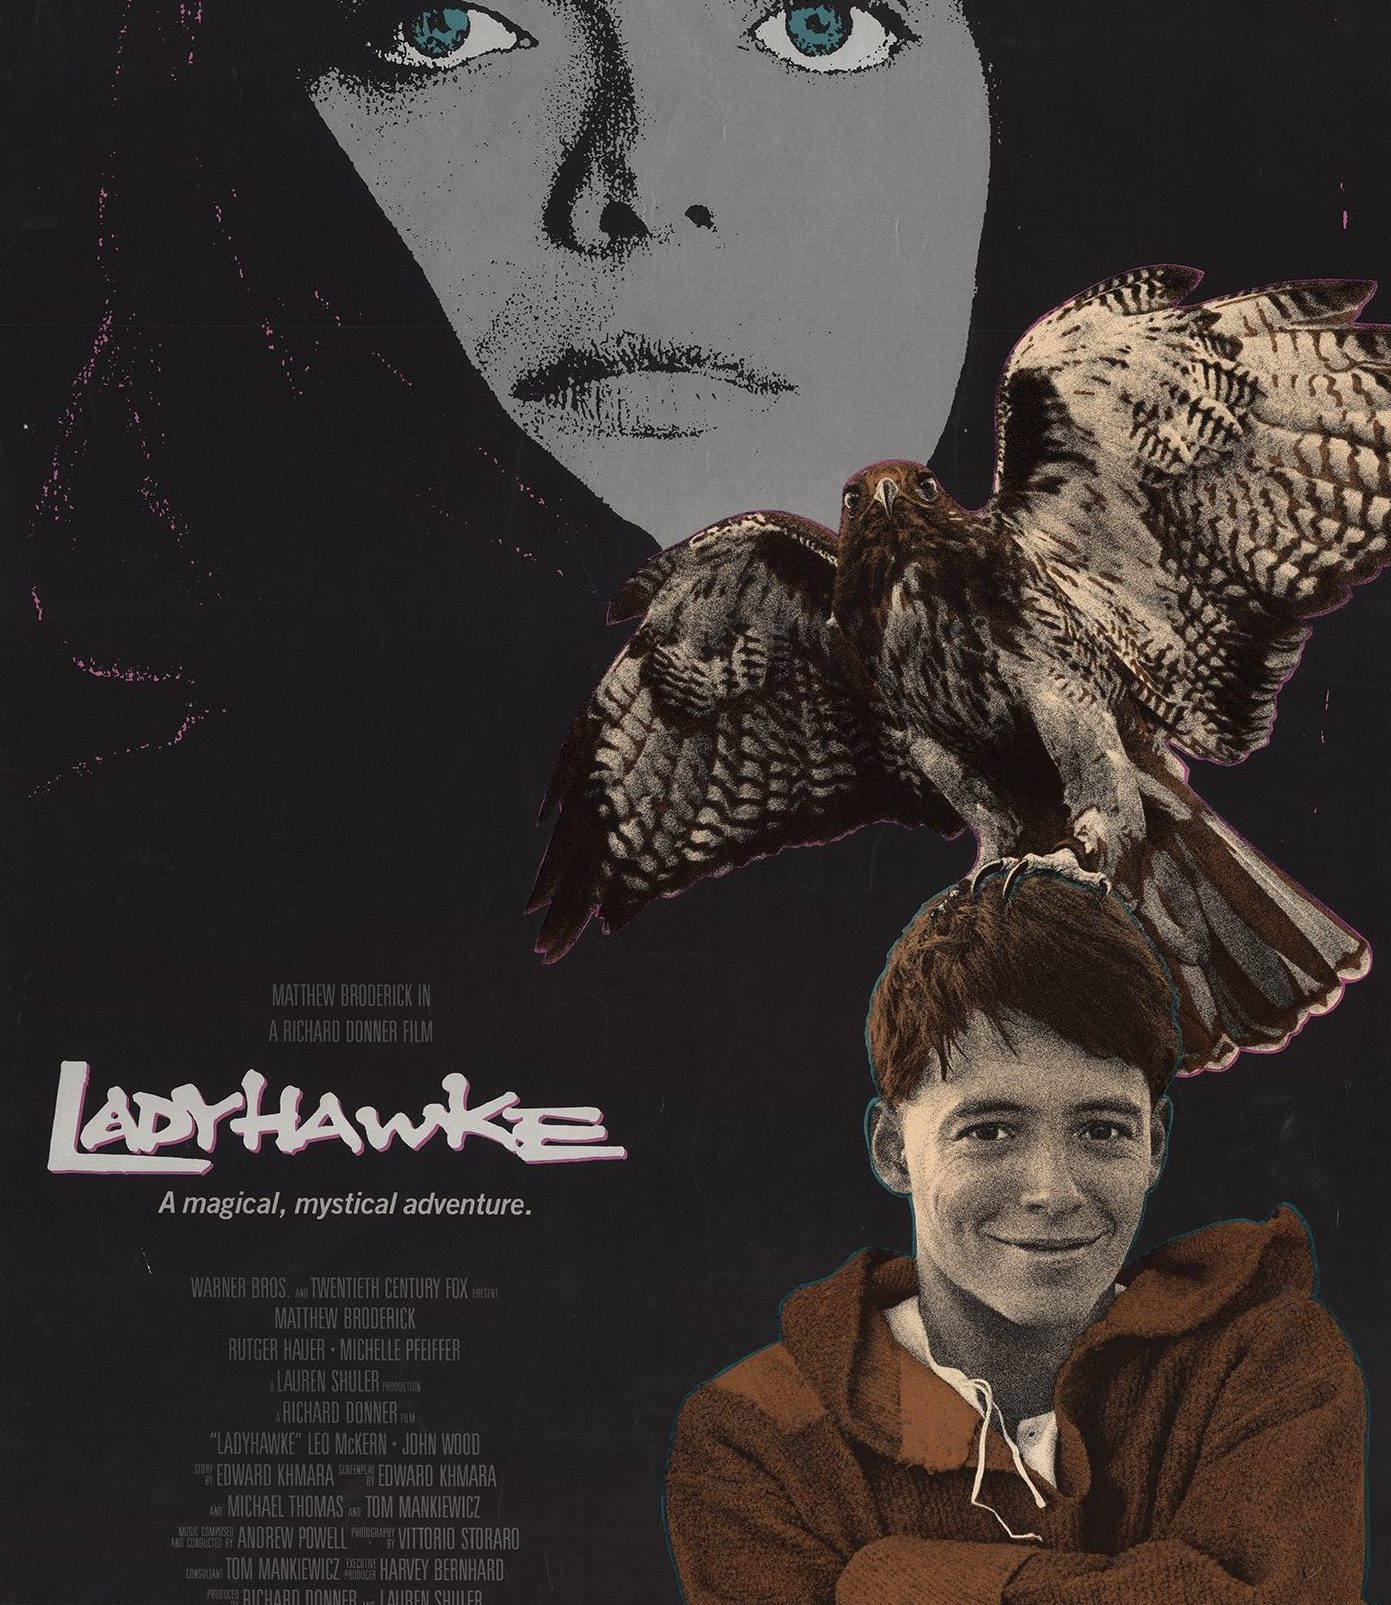 72974 e1581414969652 20 Fantastic Facts About The 1985 Sword And Sorcery Film Ladyhawke